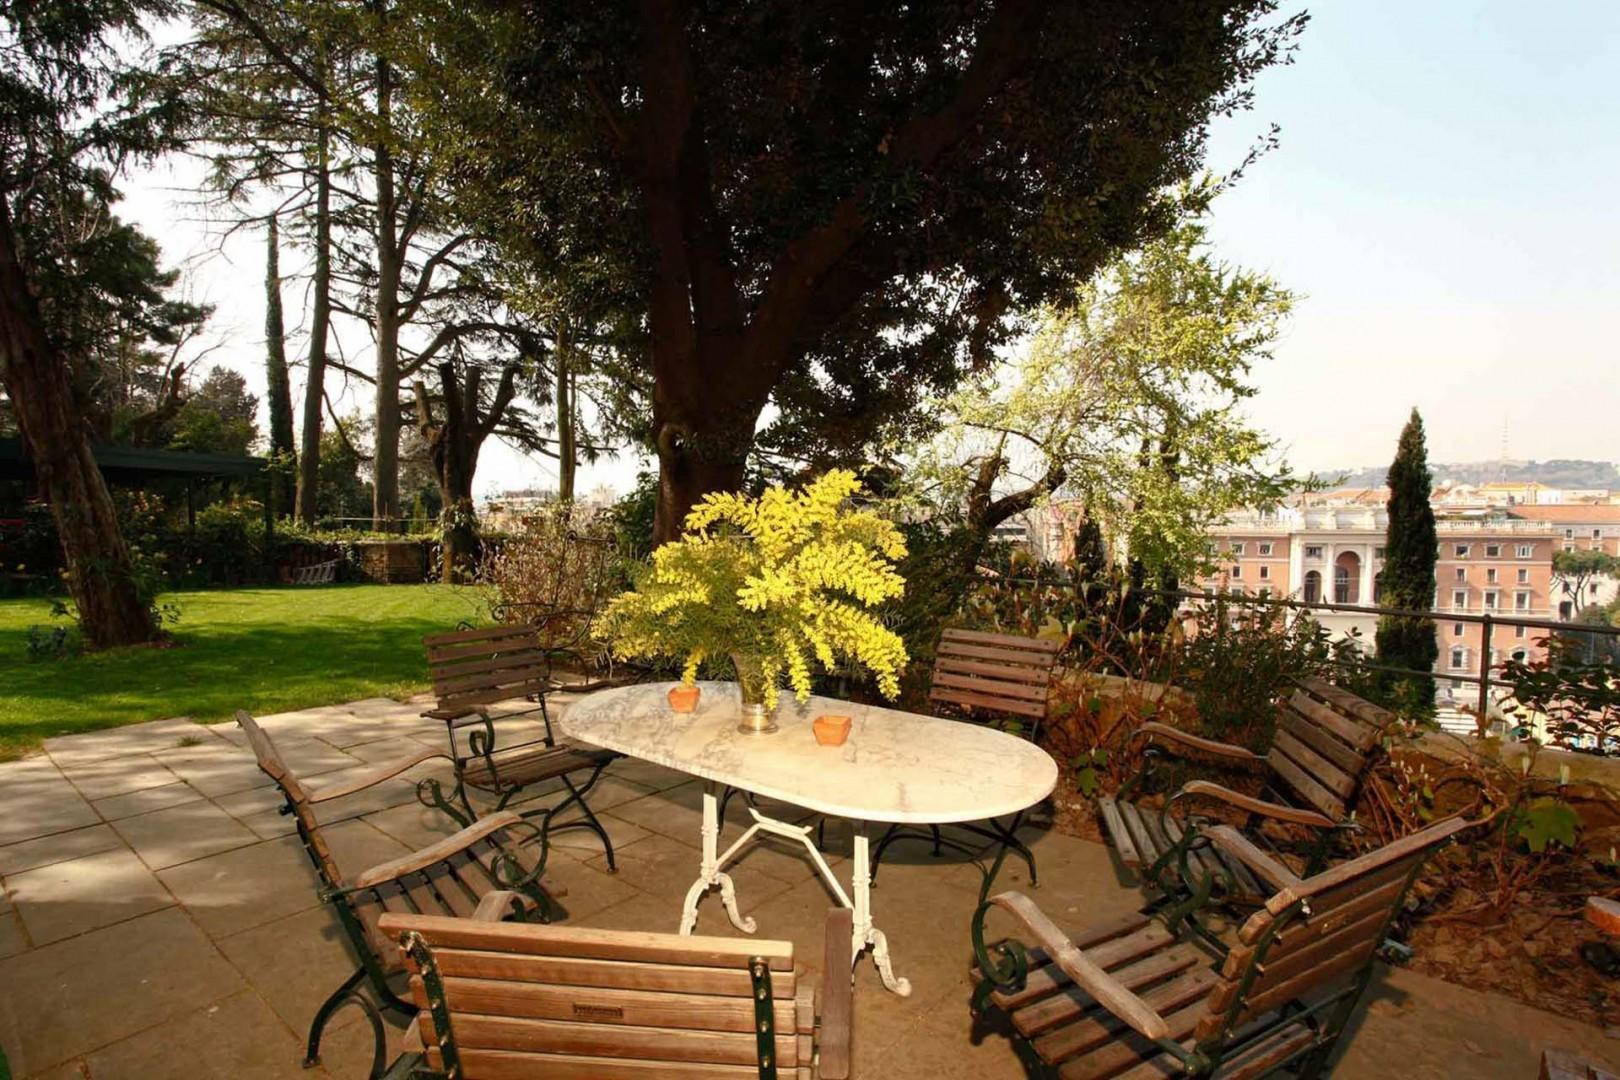 You can enjoy the terrace and views from this private garden terrace.